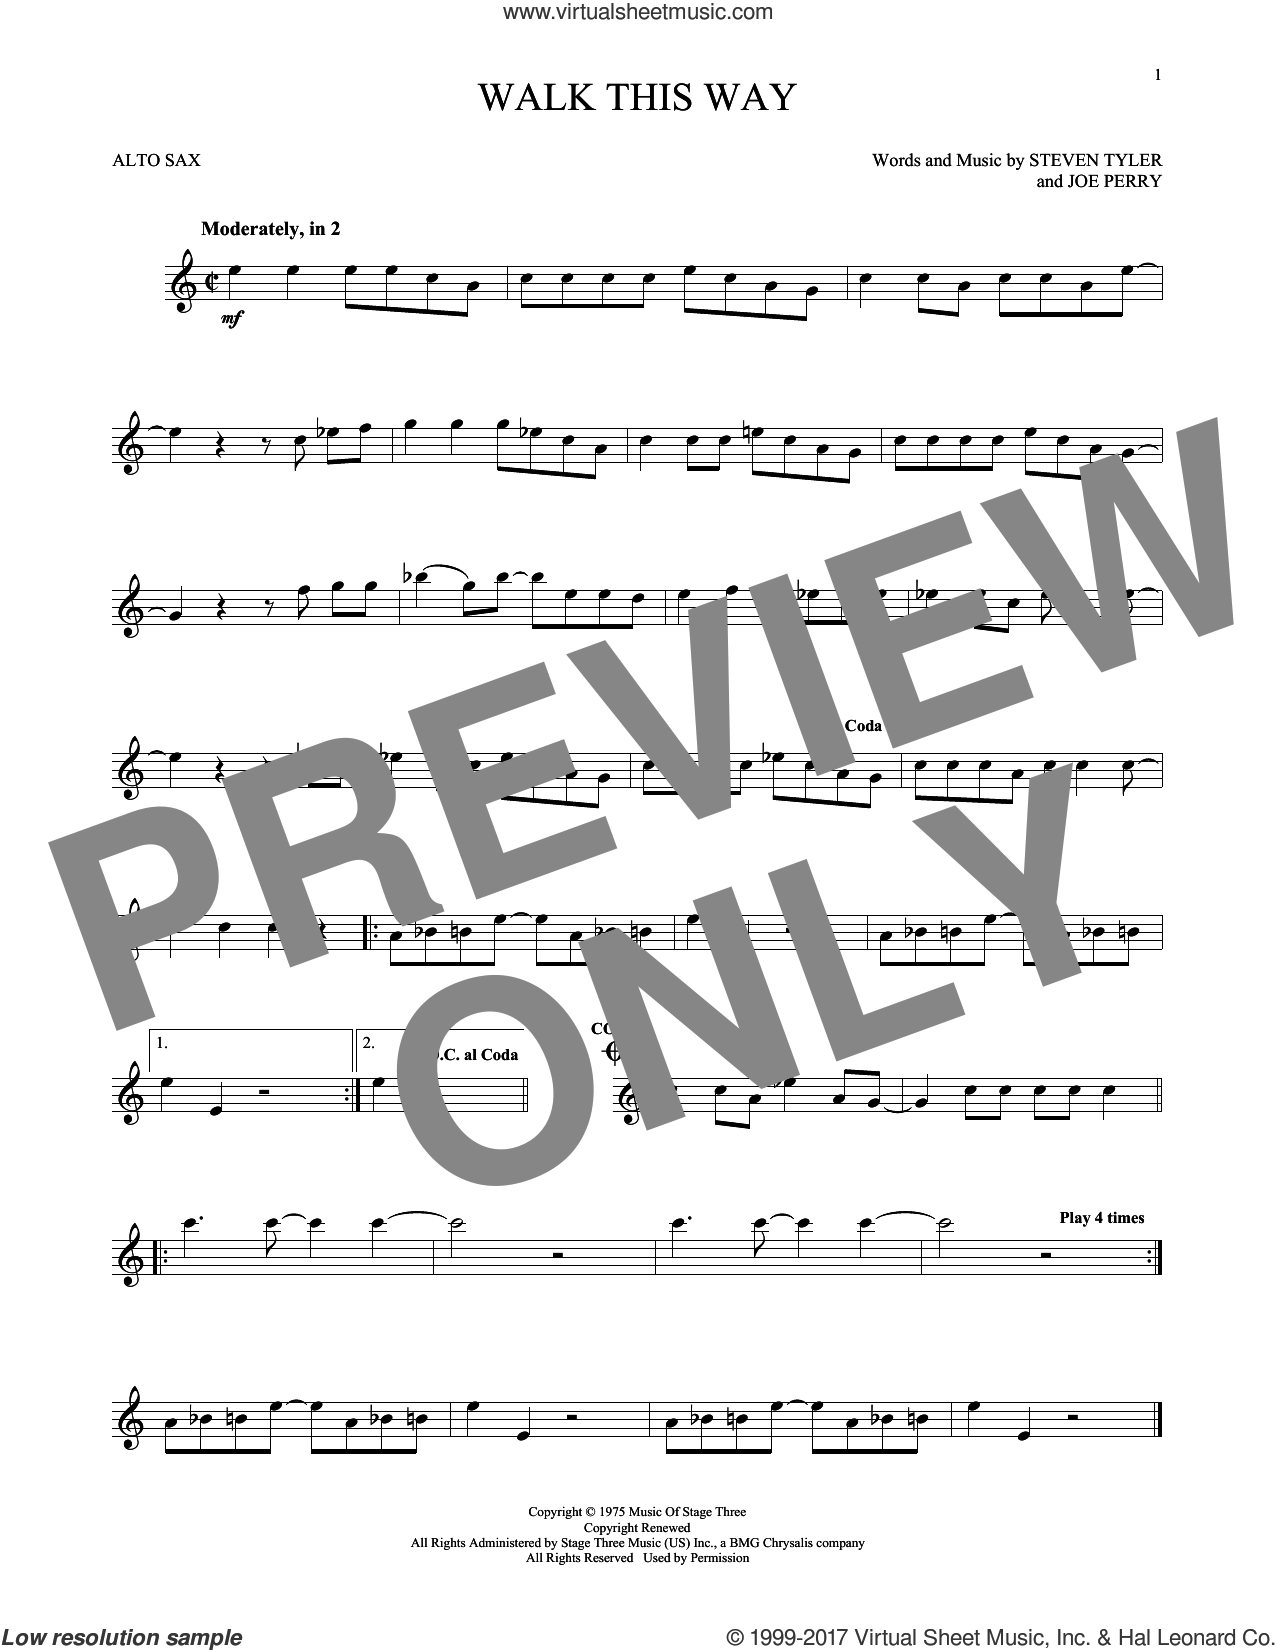 Walk This Way sheet music for alto saxophone solo by Aerosmith, Run D.M.C., Joe Perry and Steven Tyler, intermediate skill level